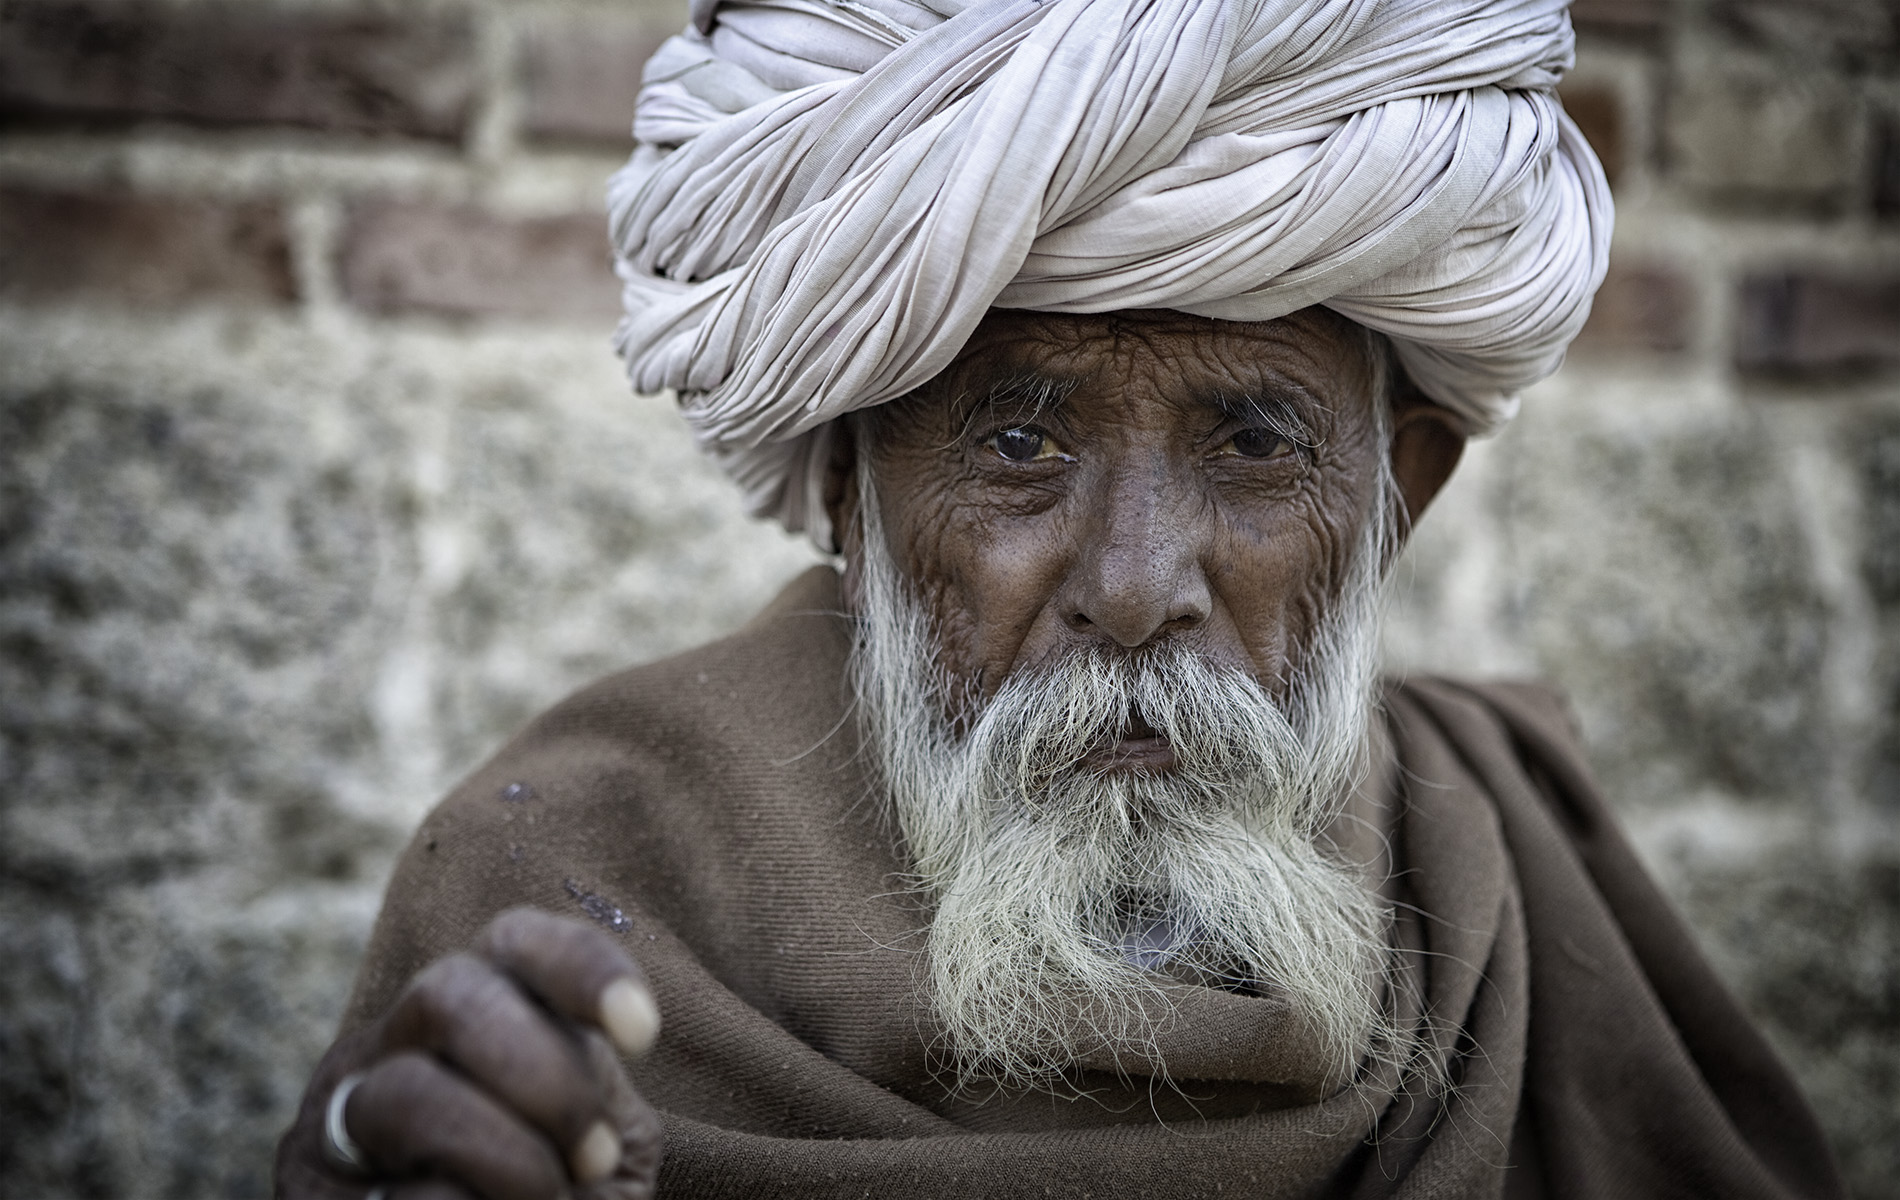 Elder of Nosra, Rajasthan